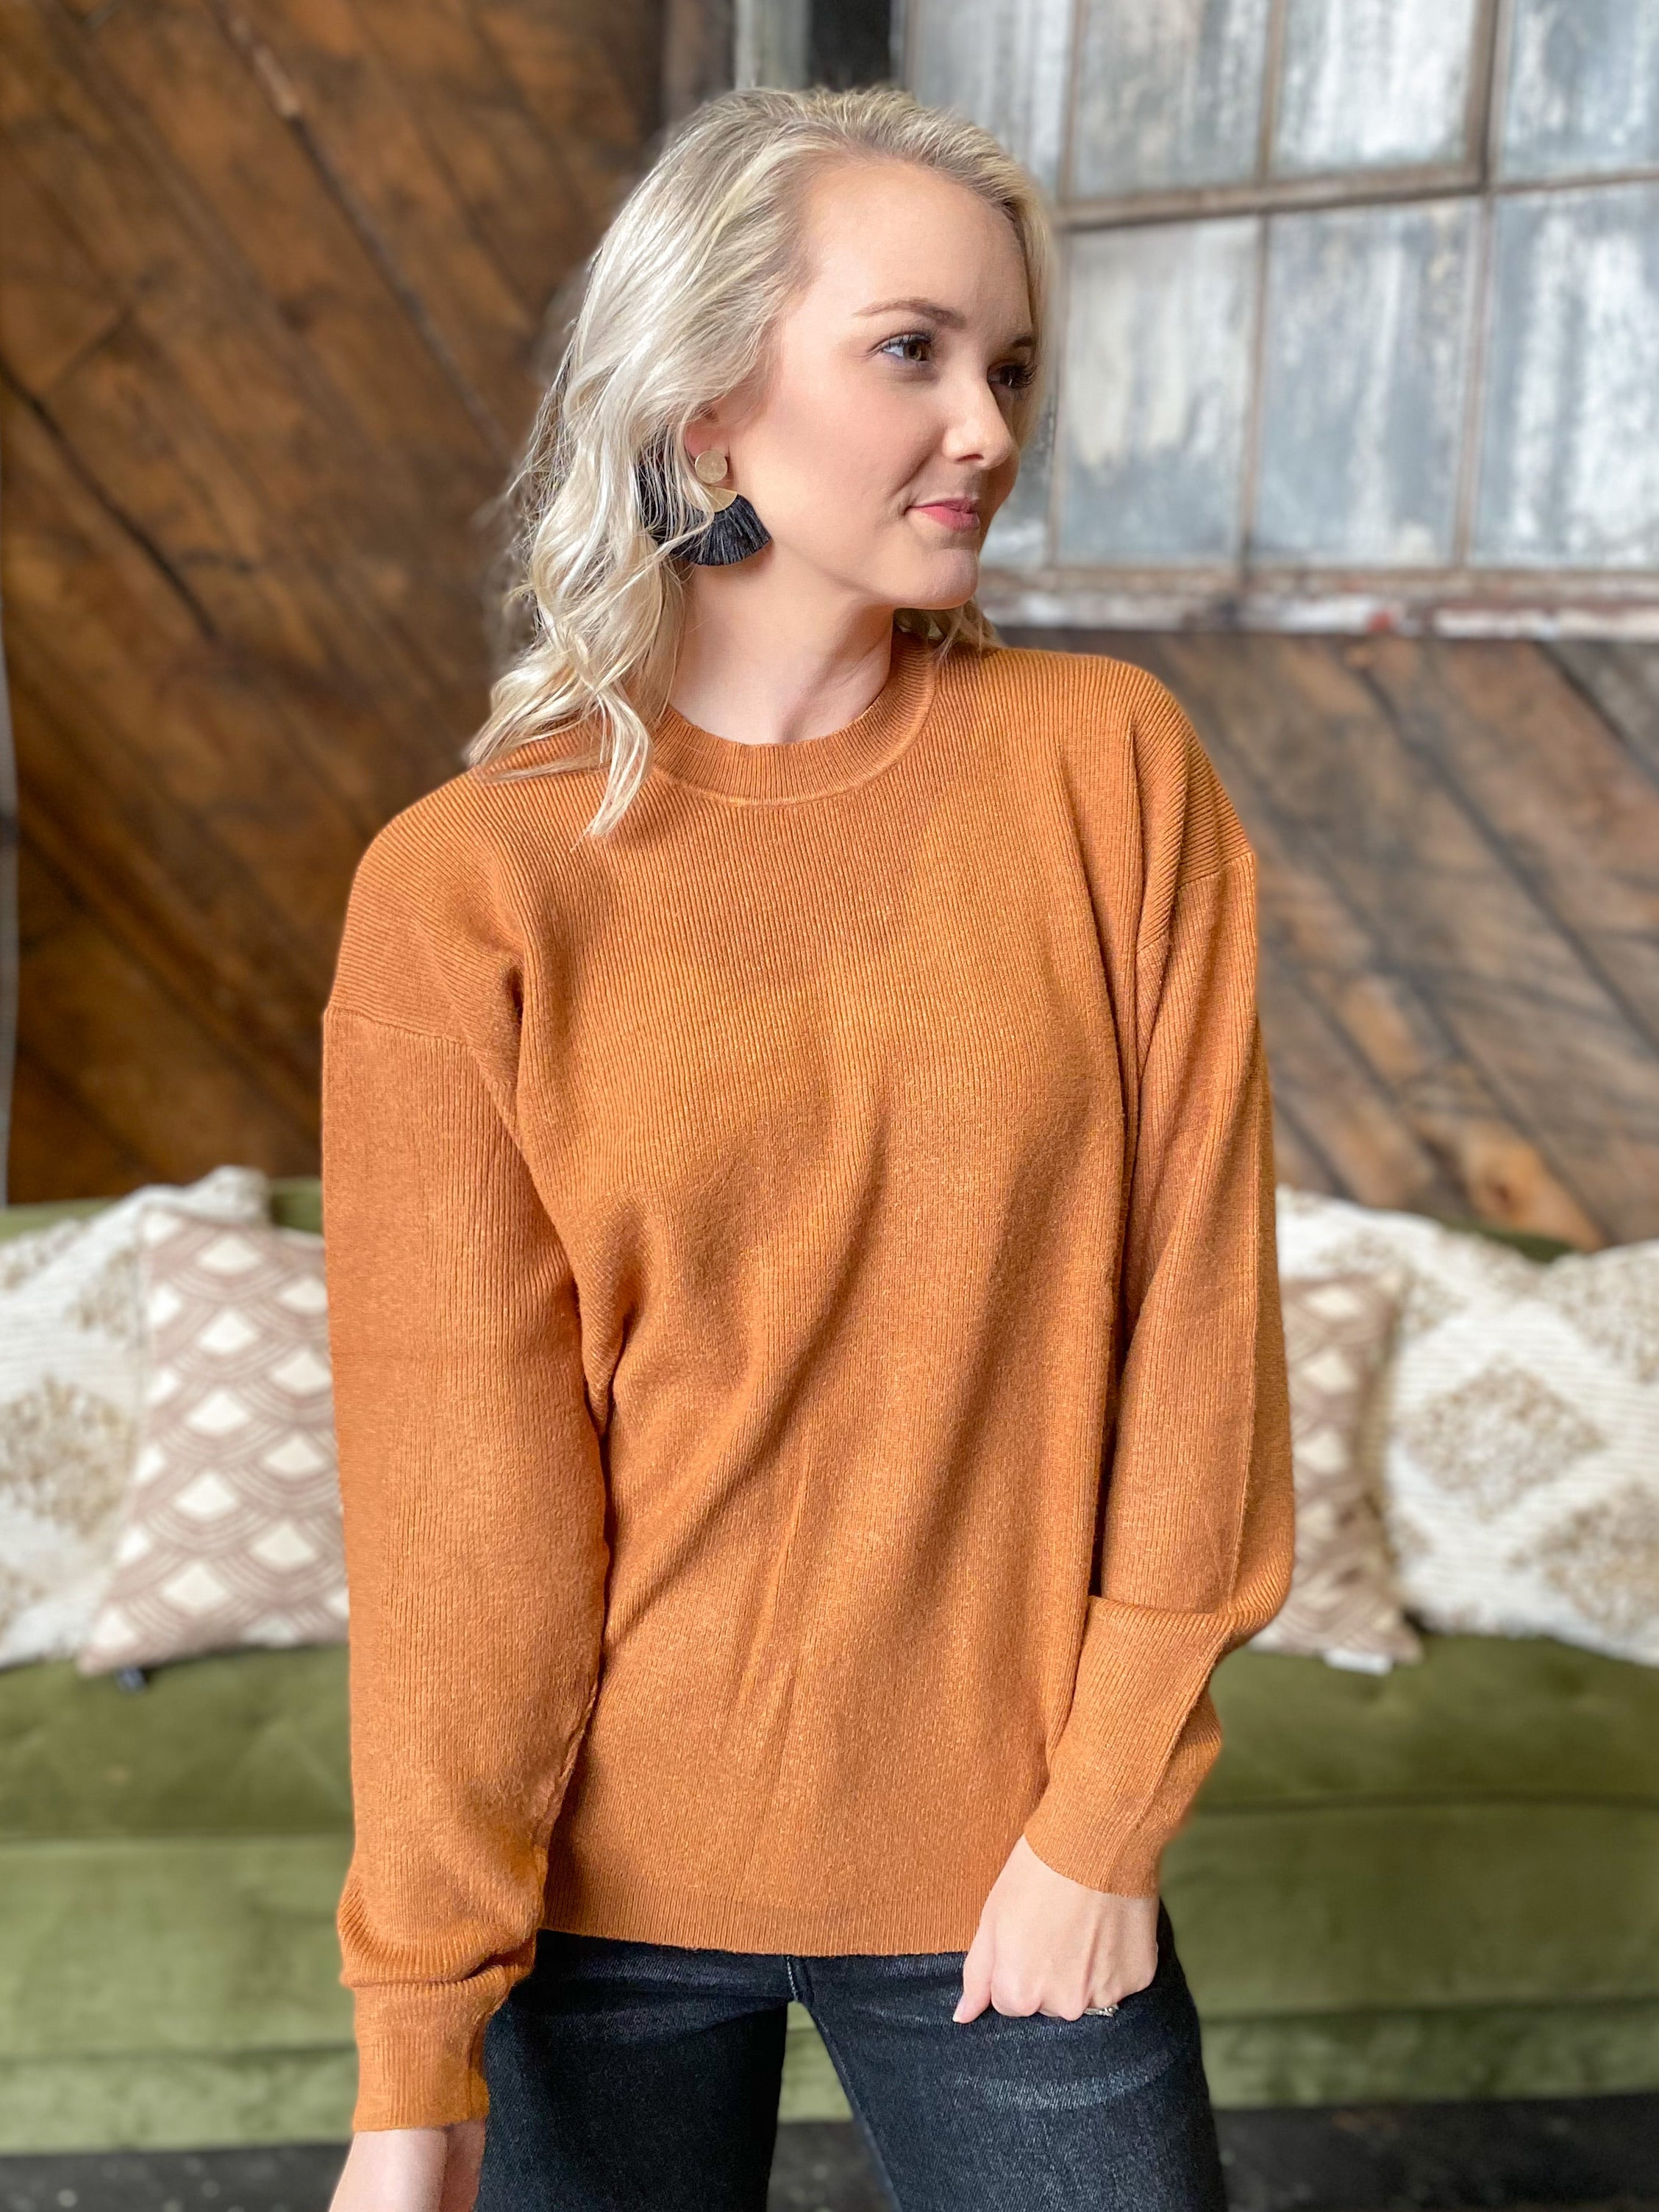 *FINAL SALE* The Eliza Top